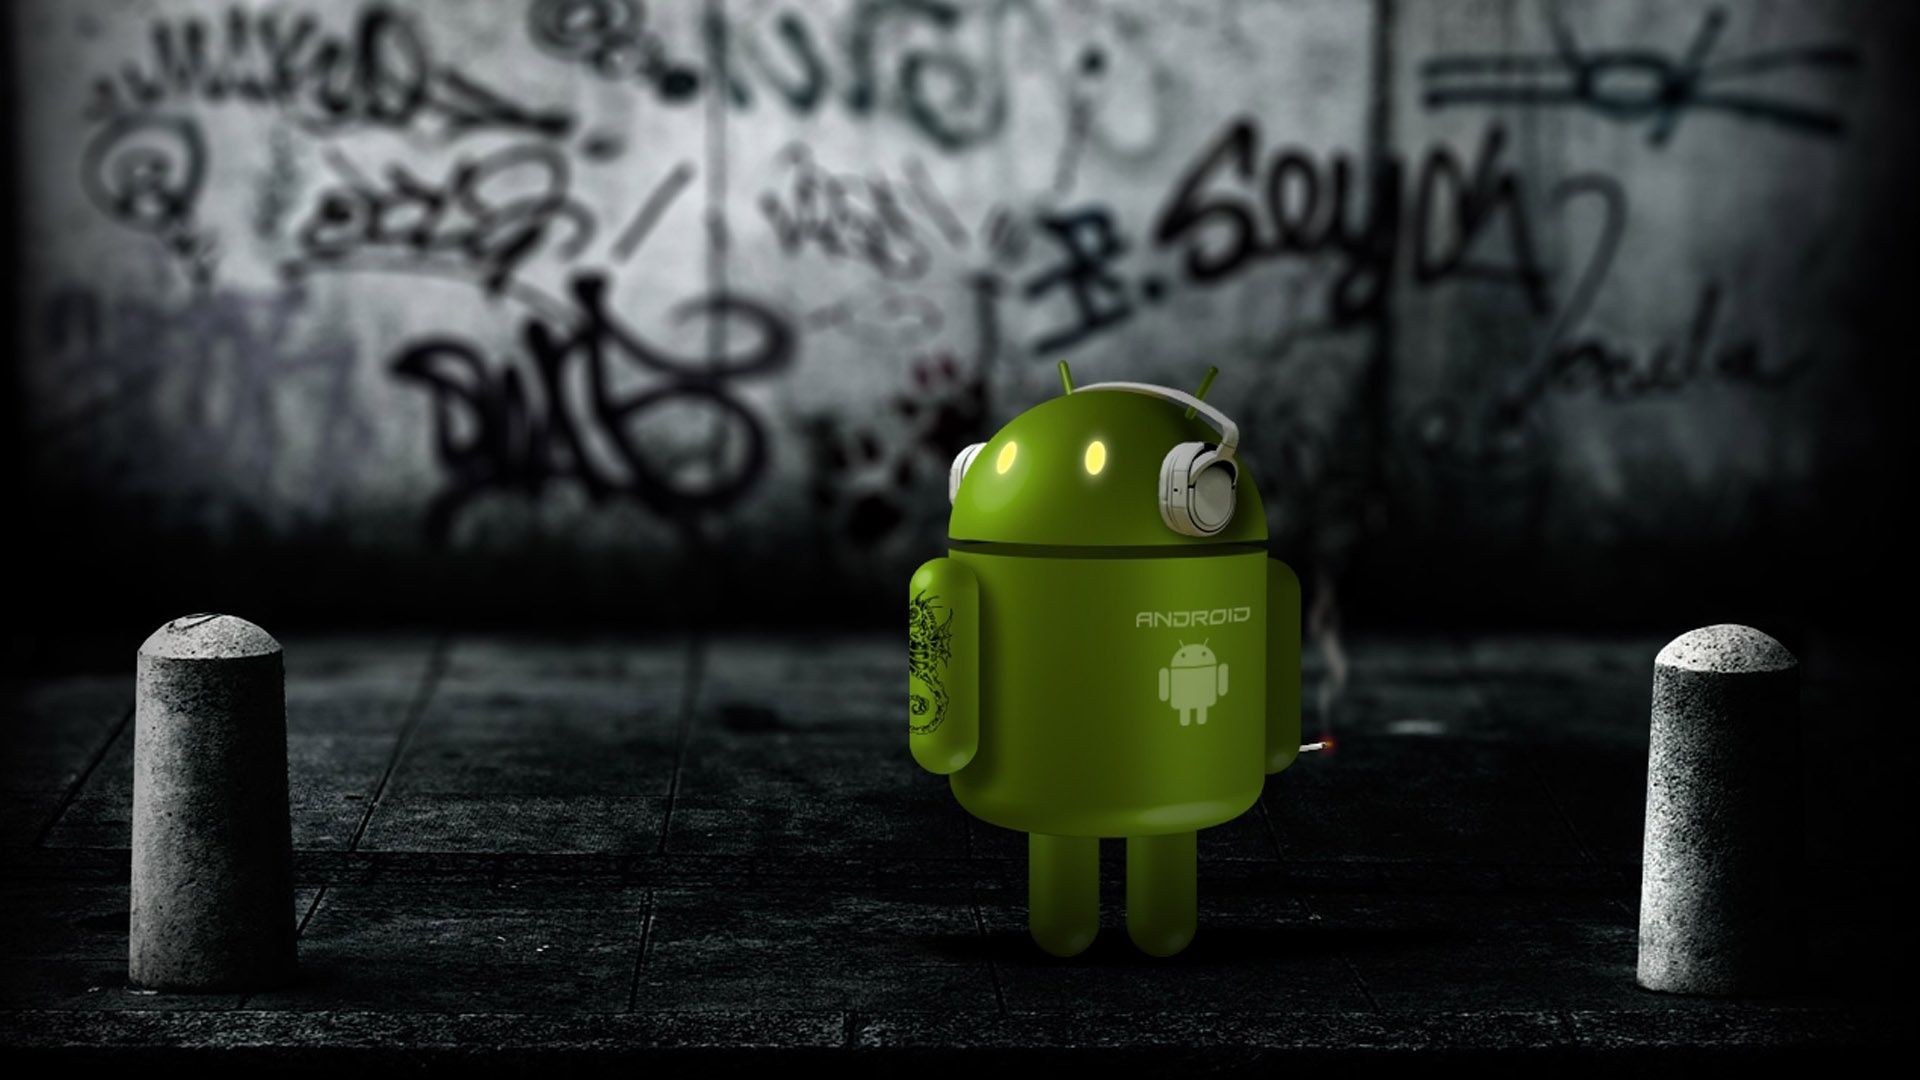 android-robots-3d-wallpaper-free-download | android wallpaper